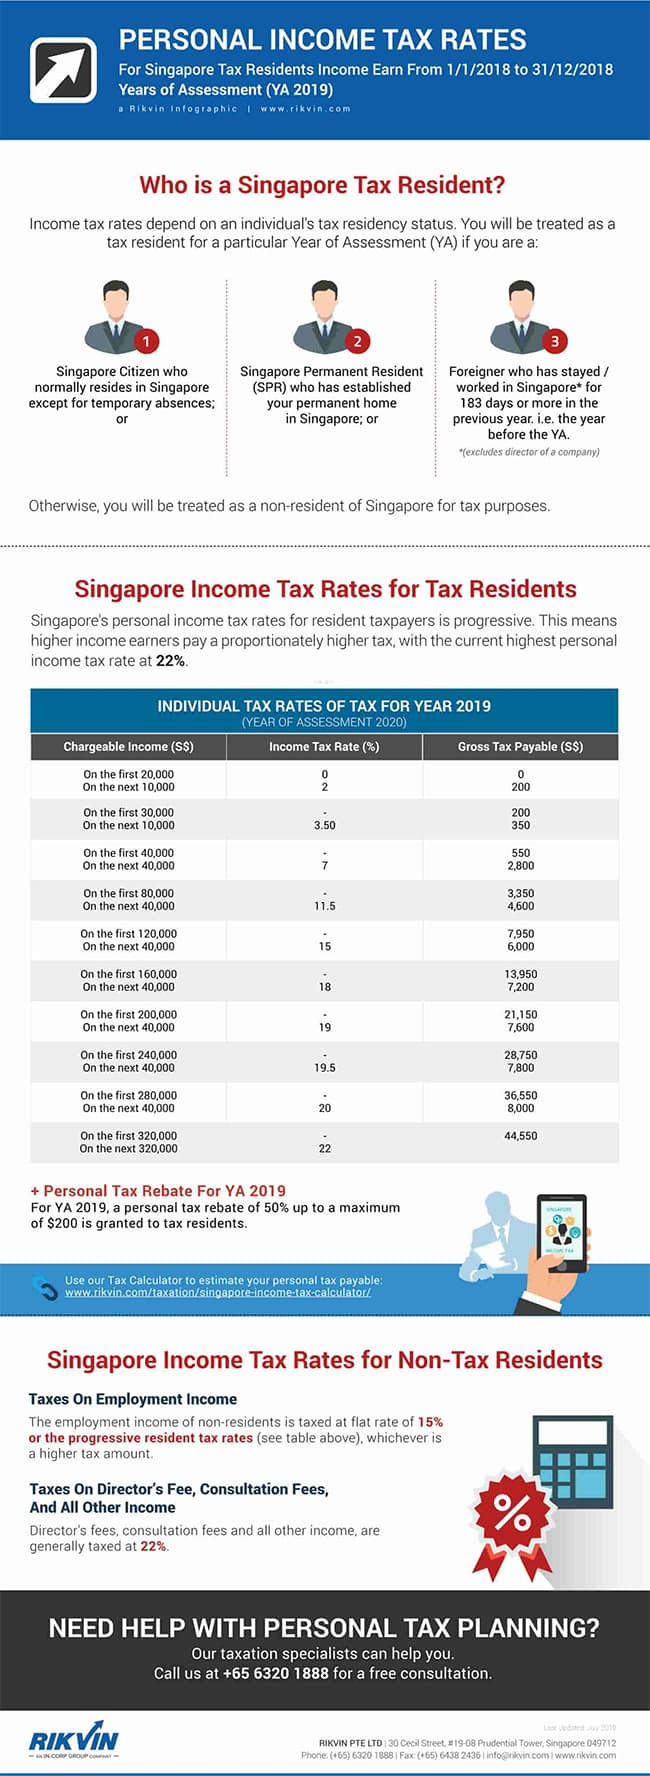 Personal Income Tax Rates for Singapore Tax Residents (YA 2019)